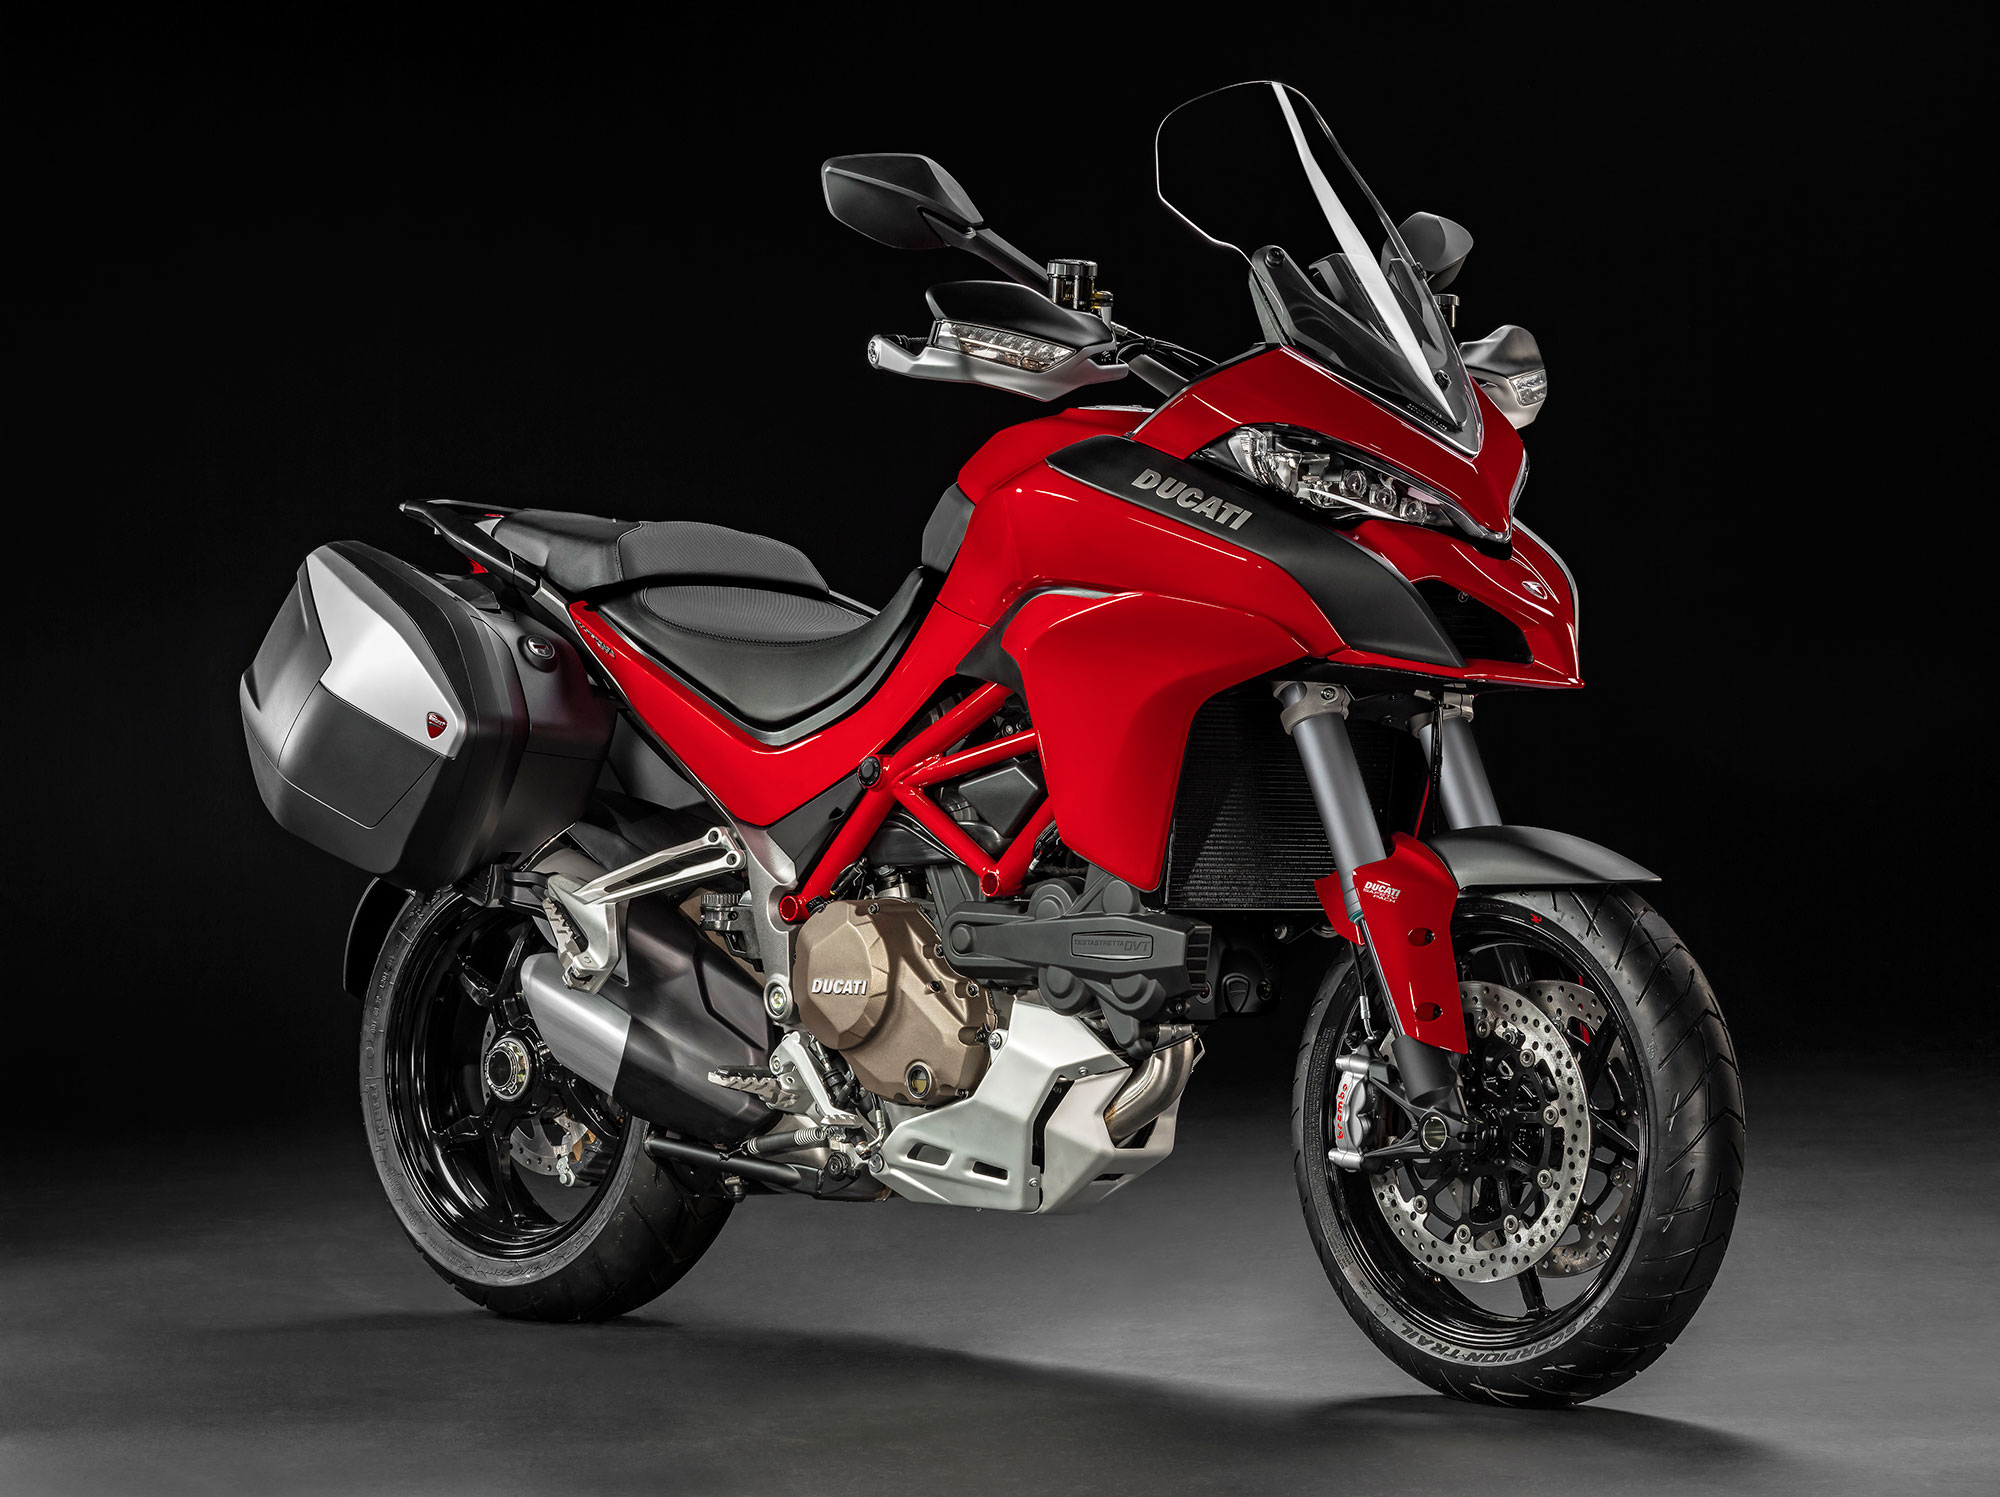 New Ducati Multistrada